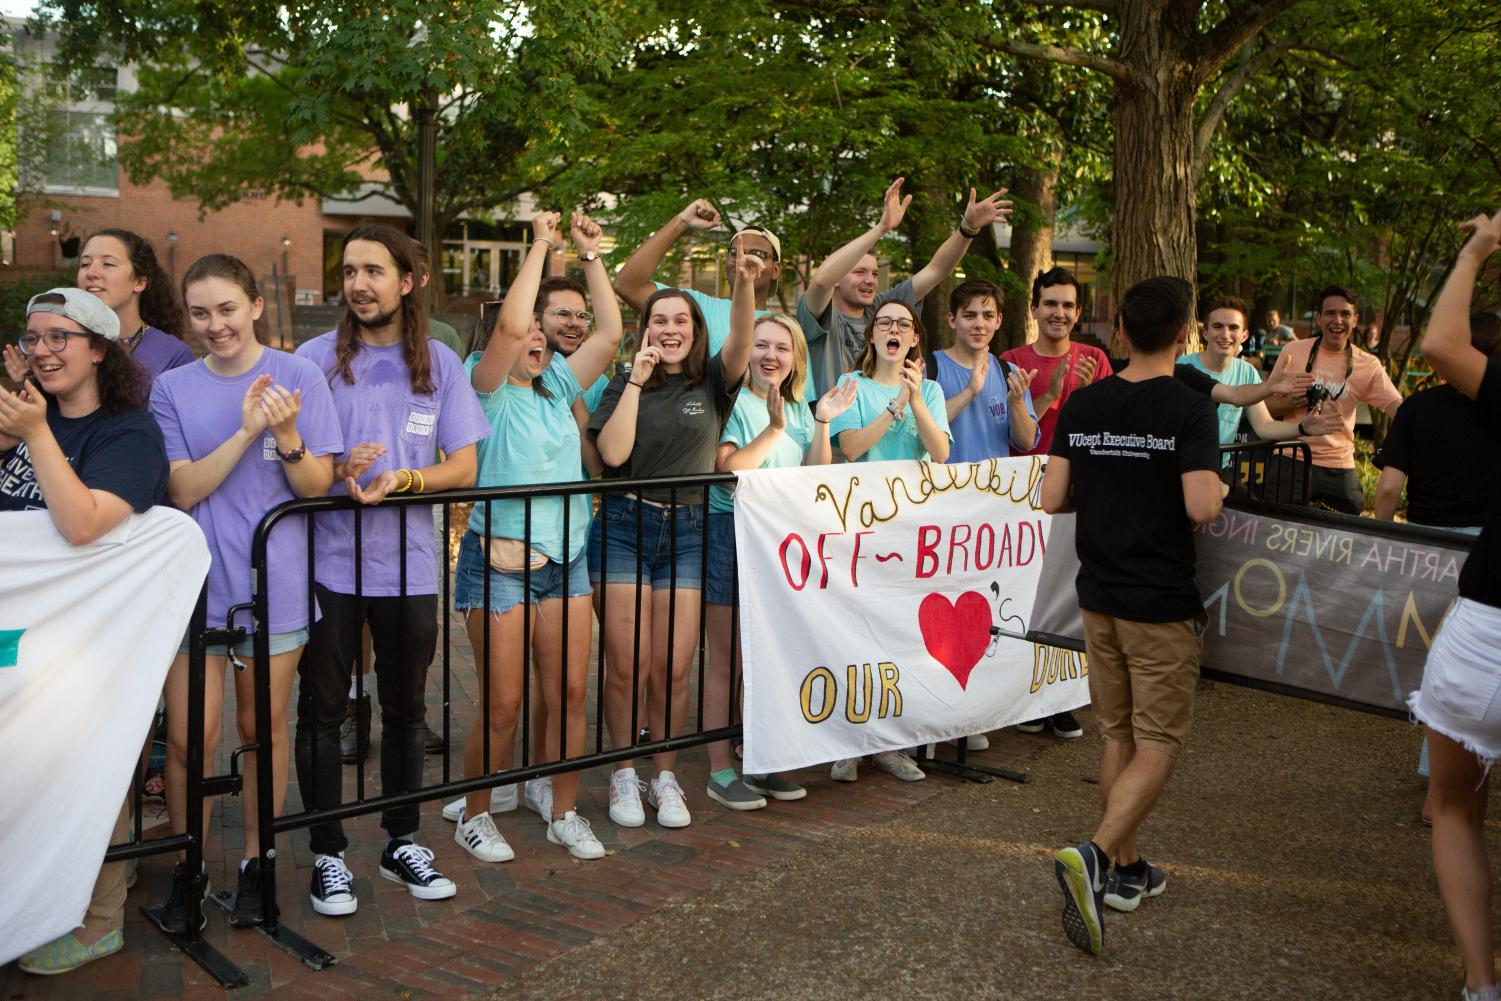 Vanderbilt+Off-Broadway+welcomes+new+students+during+Founders+Walk+2019.+%28Photo+by+Hunter+Long%29